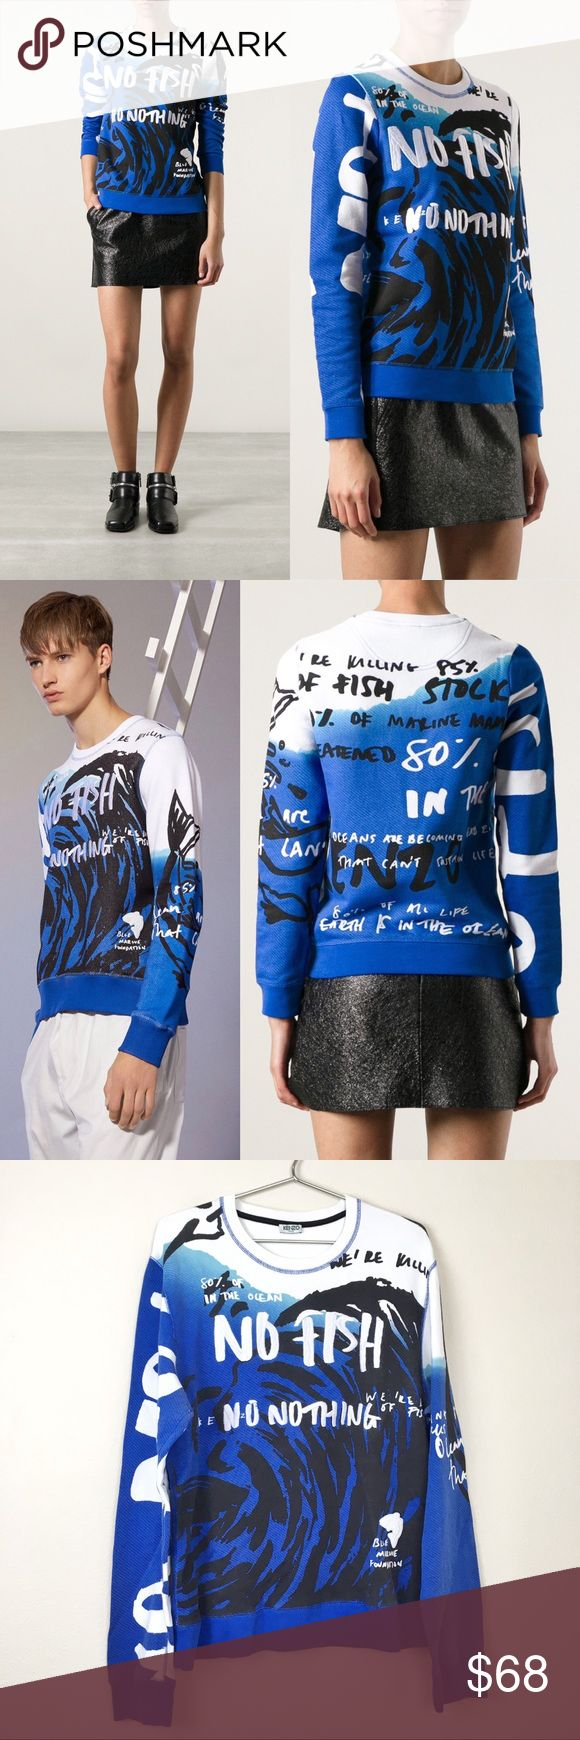 """KENZO Paris No Fish No Nothing Sweatshirt *FLAWS* ▪️Midweight 100% Cotton  ▪️Embroidery, fish appliqué & allover screenprint ▪️Banded at all openings   + Details +  ▪️Size: Size tag removed - approximate Women's XL / Men's M/L ▪️Material: 100% Cotton ▪️Condition: Good condition! Moderate general wear & light fading. Signs of wear, fading & color bleeding at armpits. Light yellowing around neck. Light wear to embroidery & fish detail at bottom left.  + Measurements +  Bust: 43"""" Bottom hem…"""